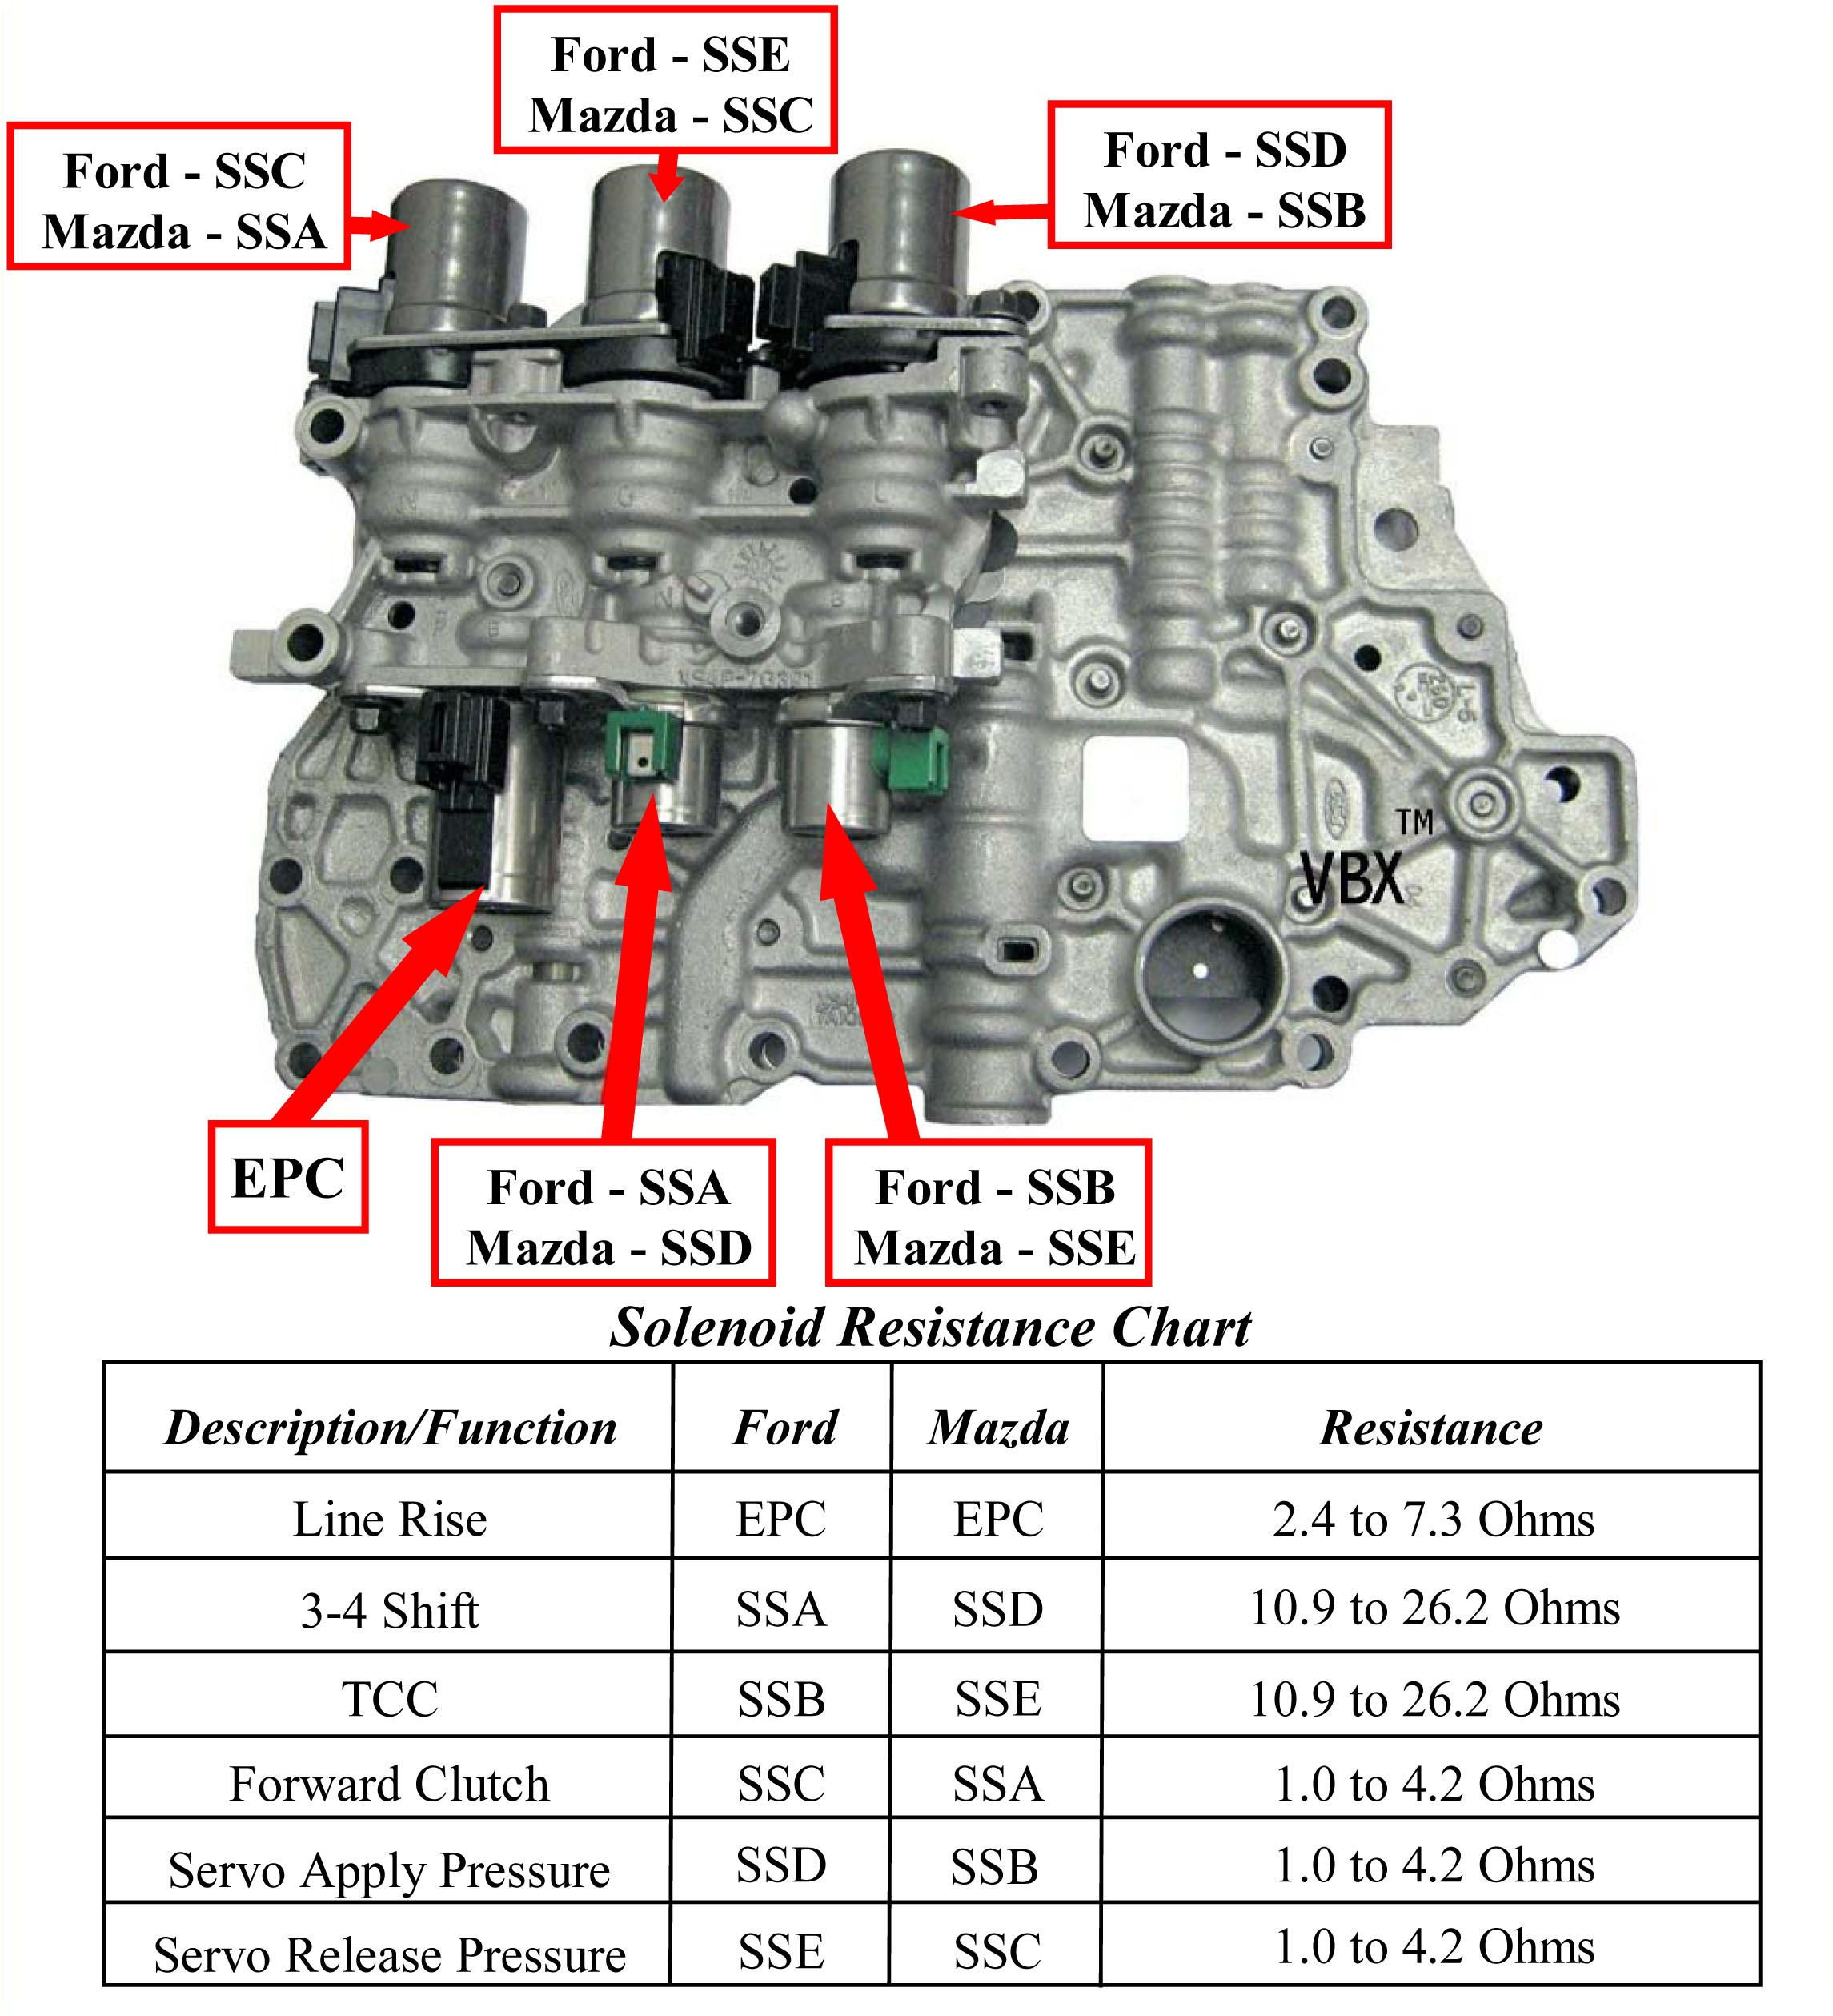 2004 ford Focus Engine Diagram 2003 Zx5 2 3 Auto 1 2 Shift Problems ford  Focus